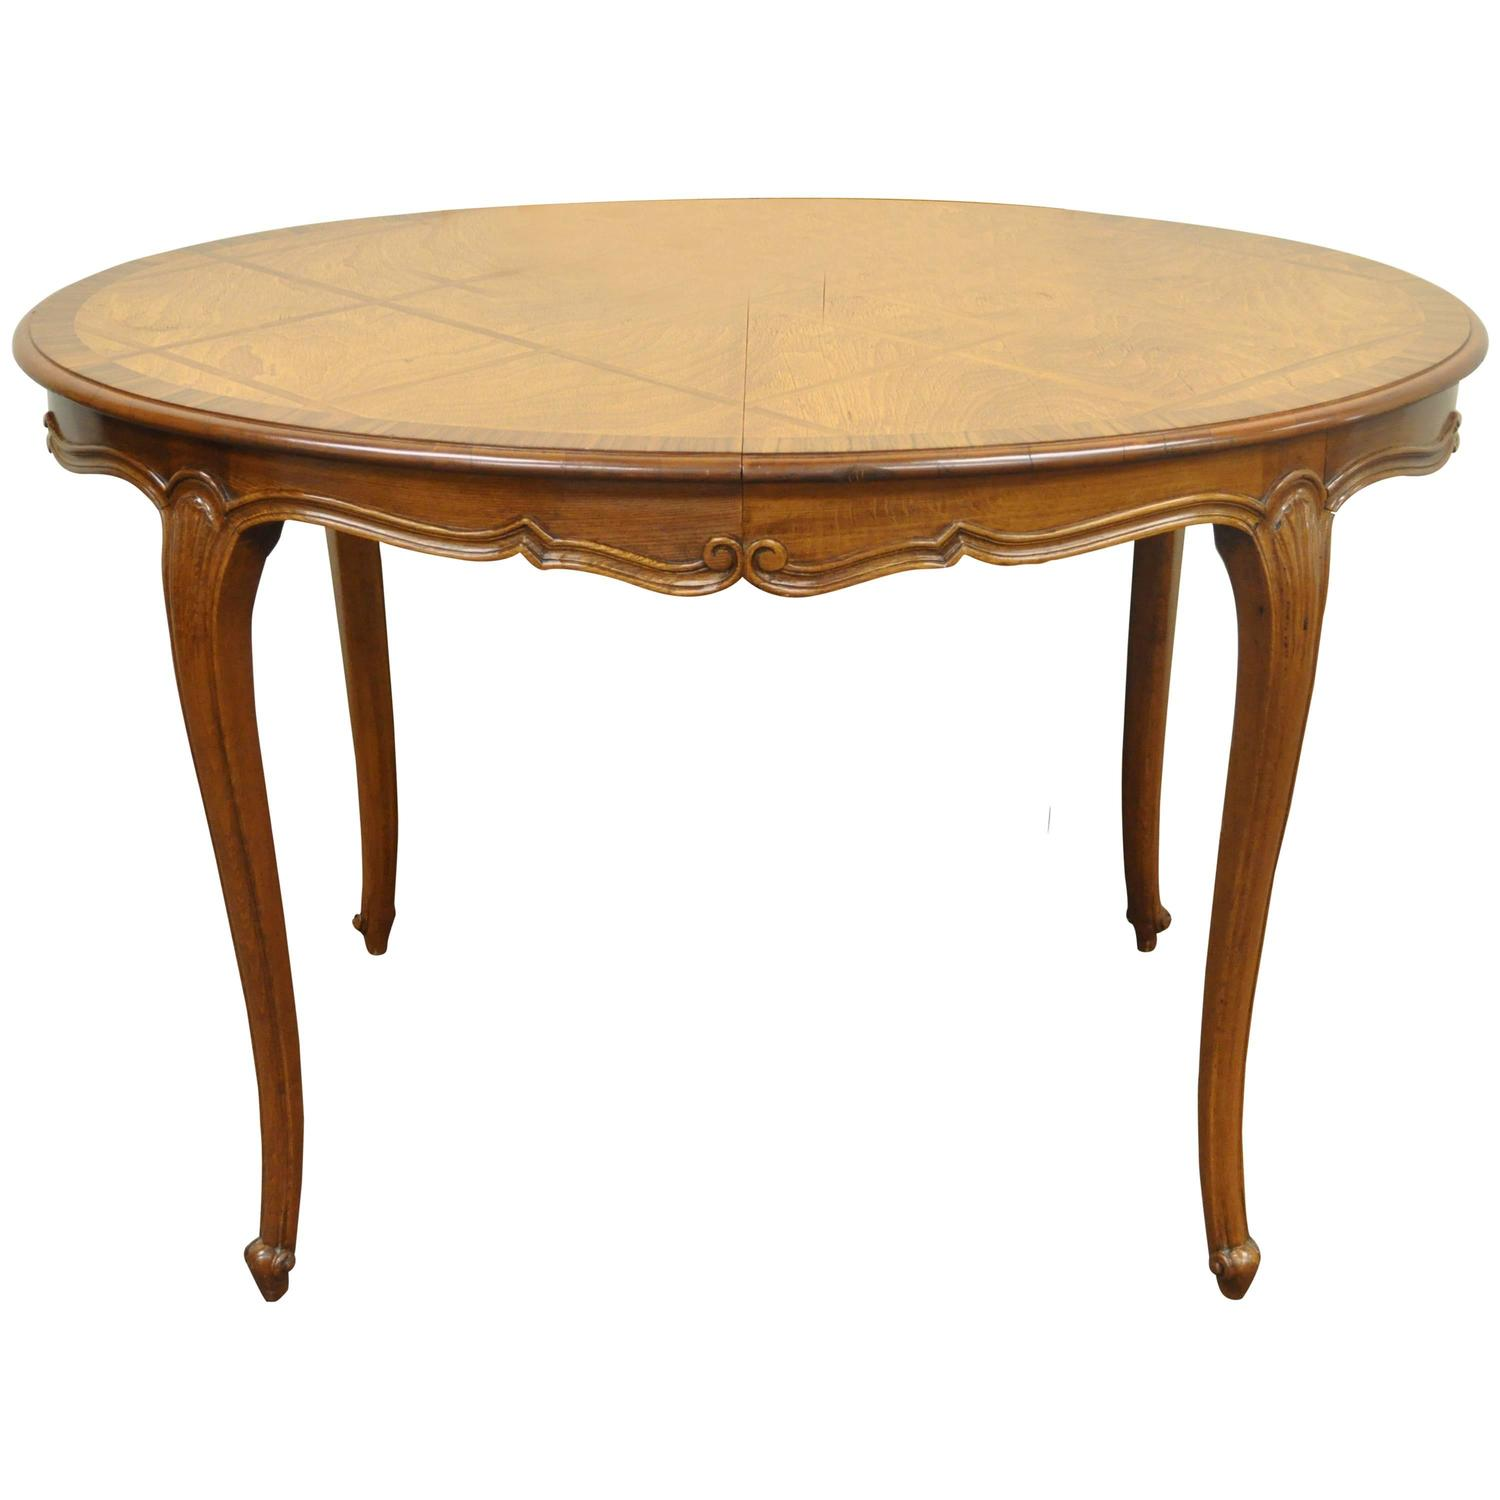 antique country french round whitewashed dining or centre table at petite country french or louis xv style parquetry inlaid custom dining table